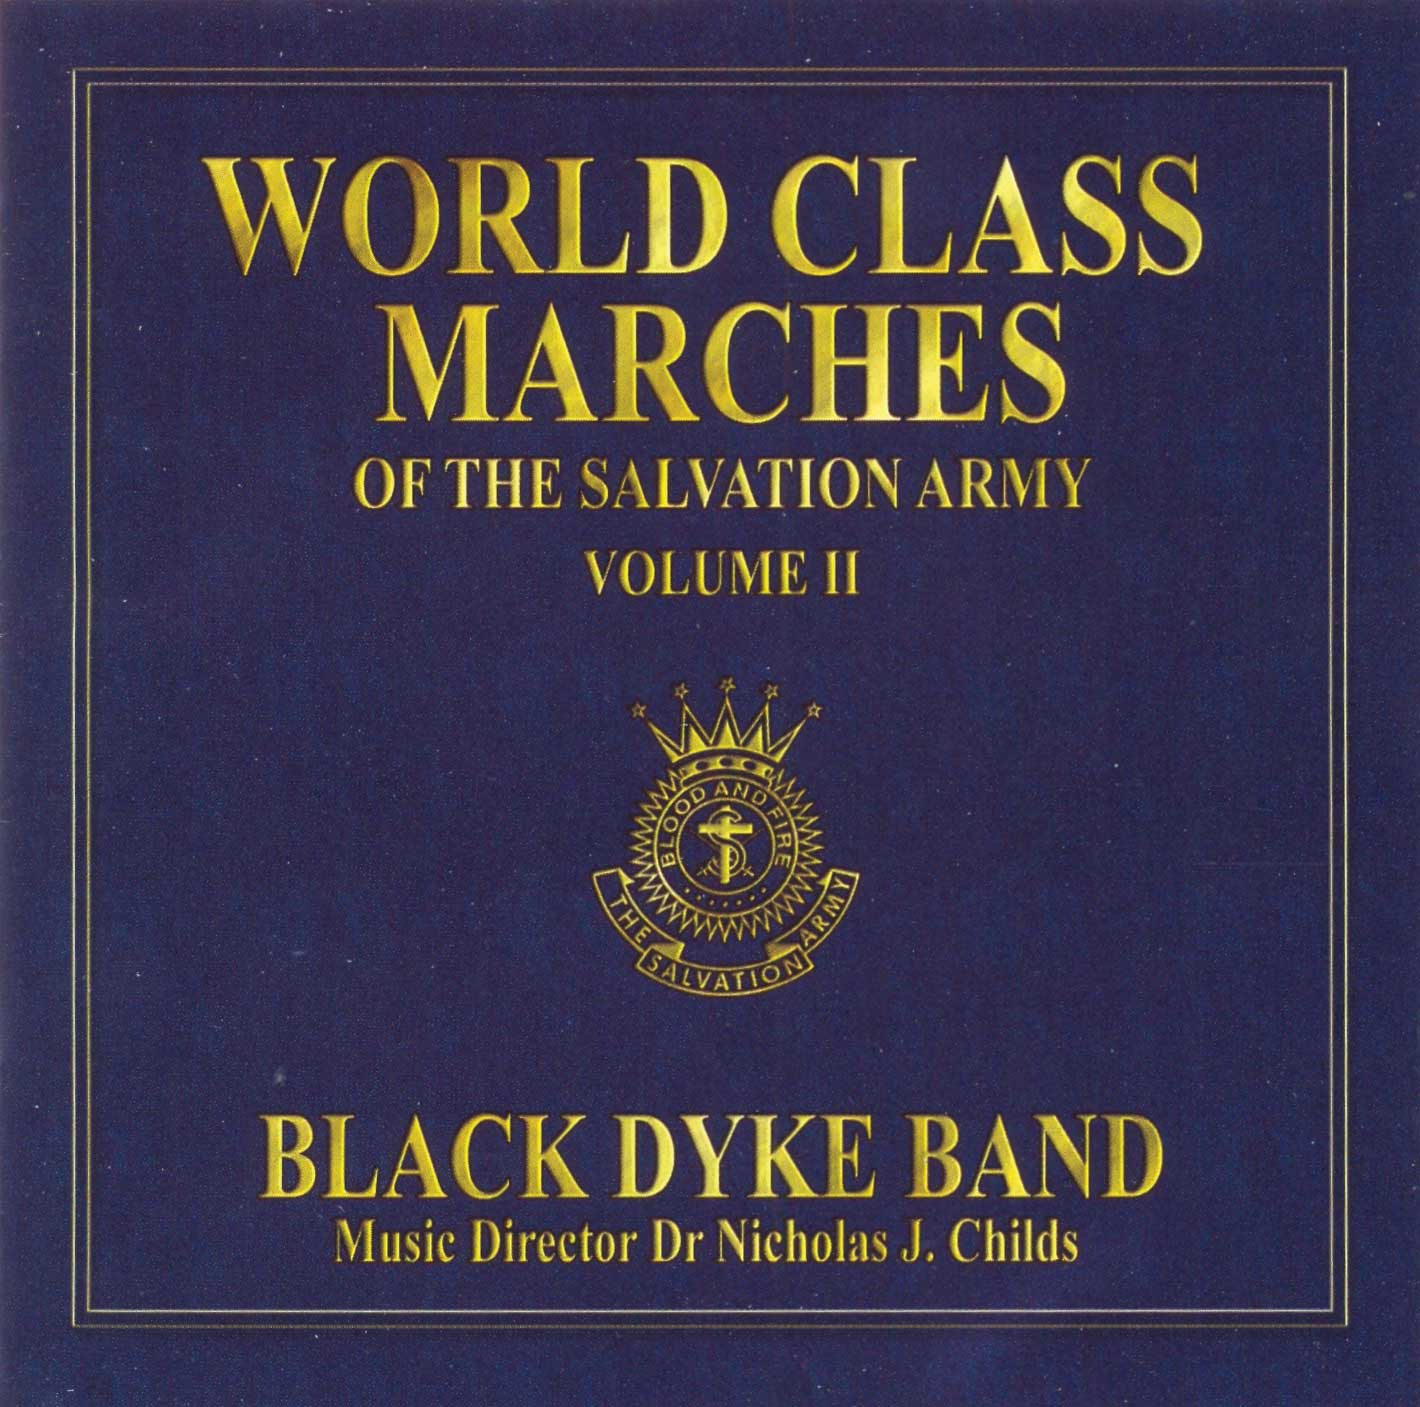 World Class Marches of The SA Vol. II - CD